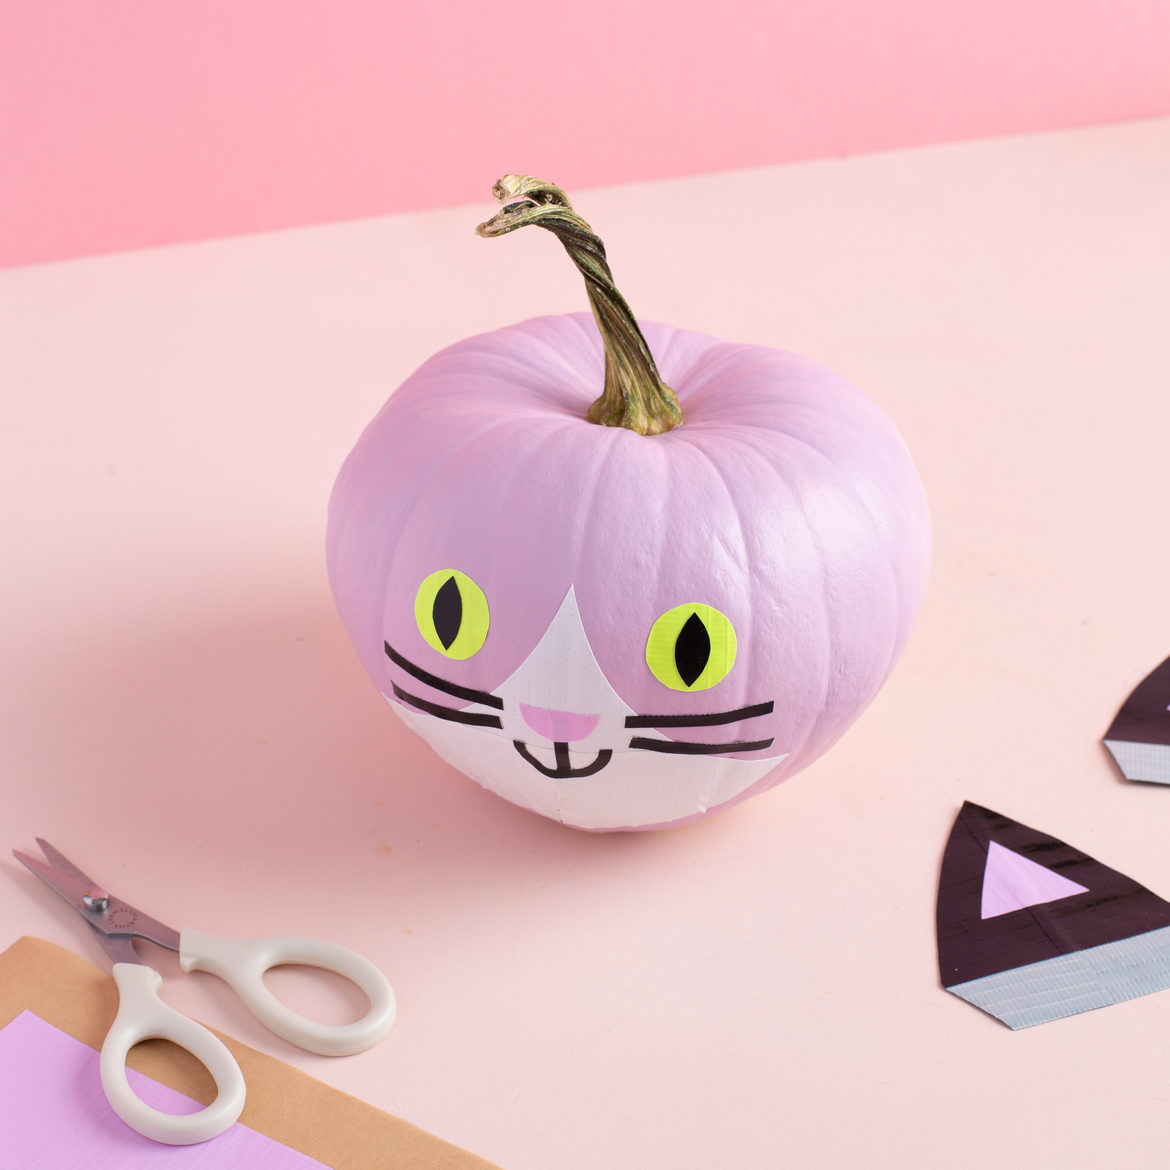 Duct tape cat face applied to painted pink pumpkin.